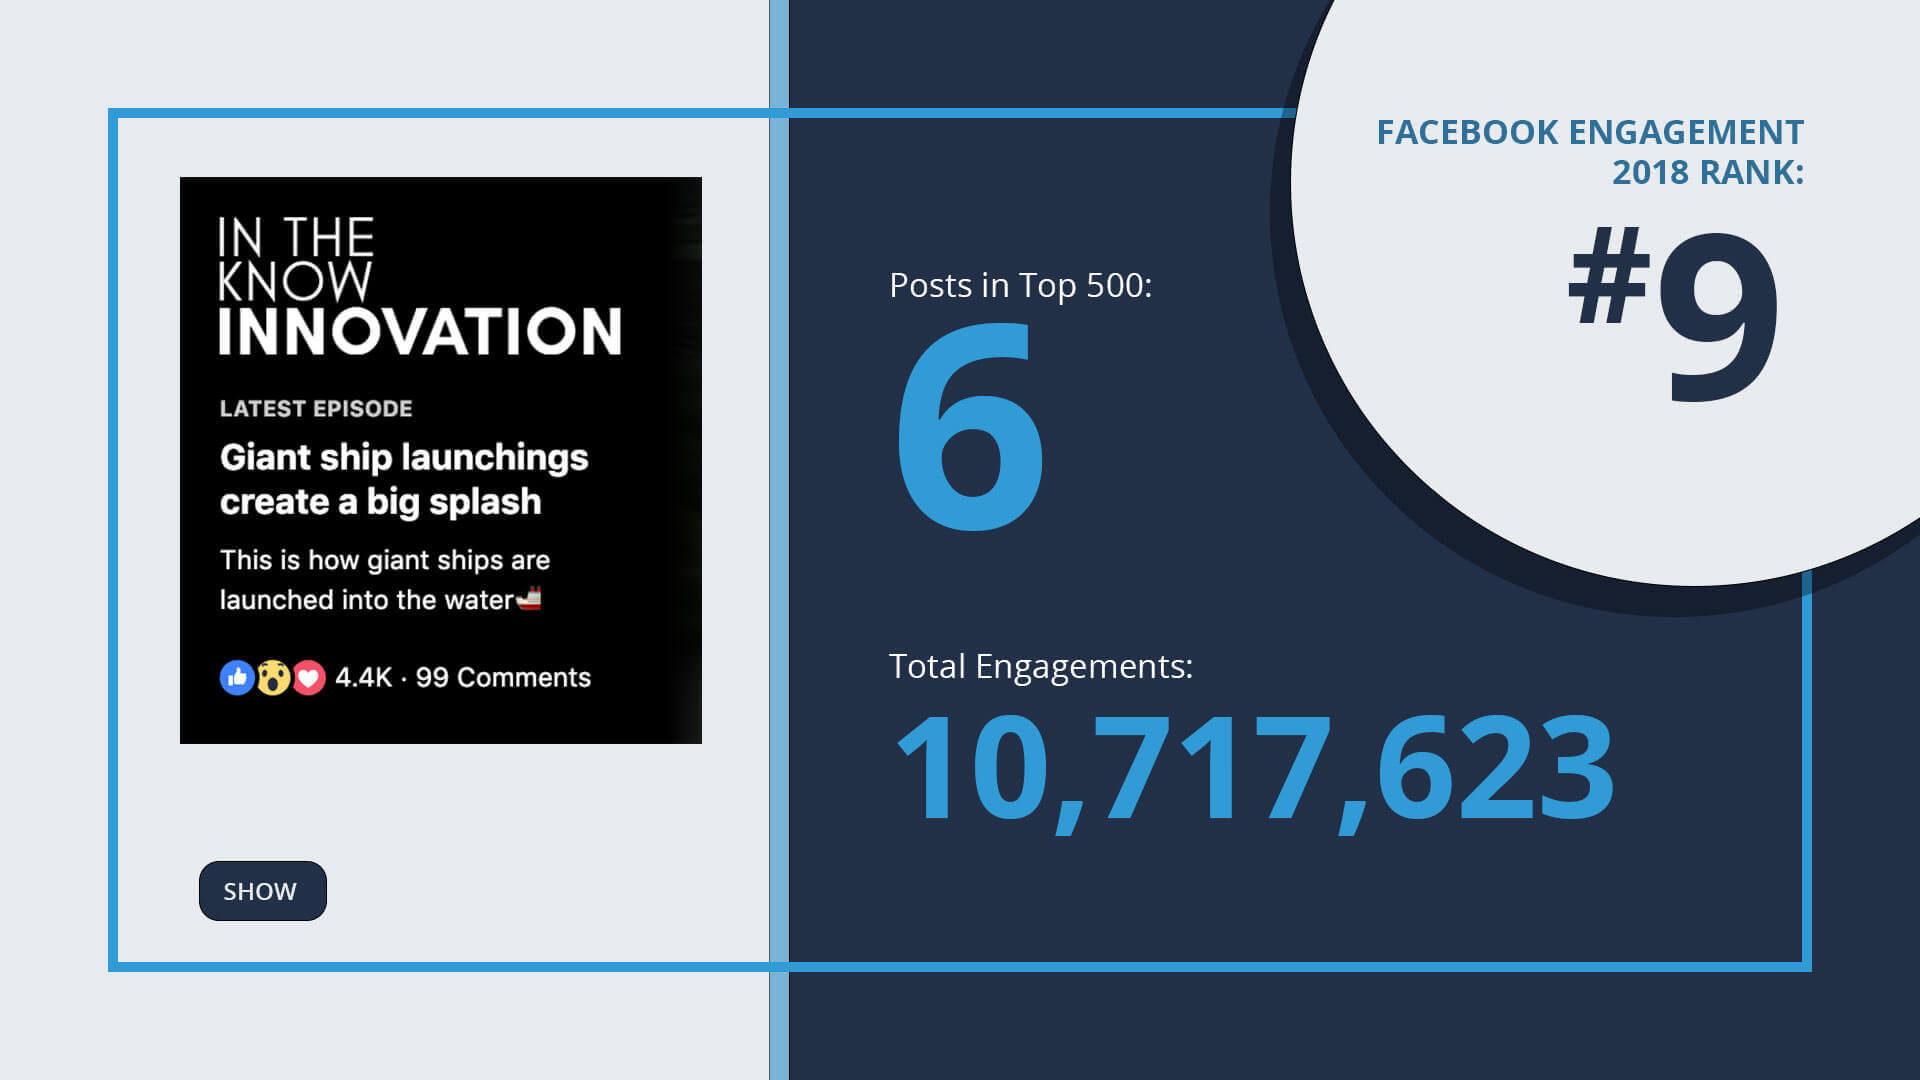 facebook-engagement-top-10-in-the-know-innovation